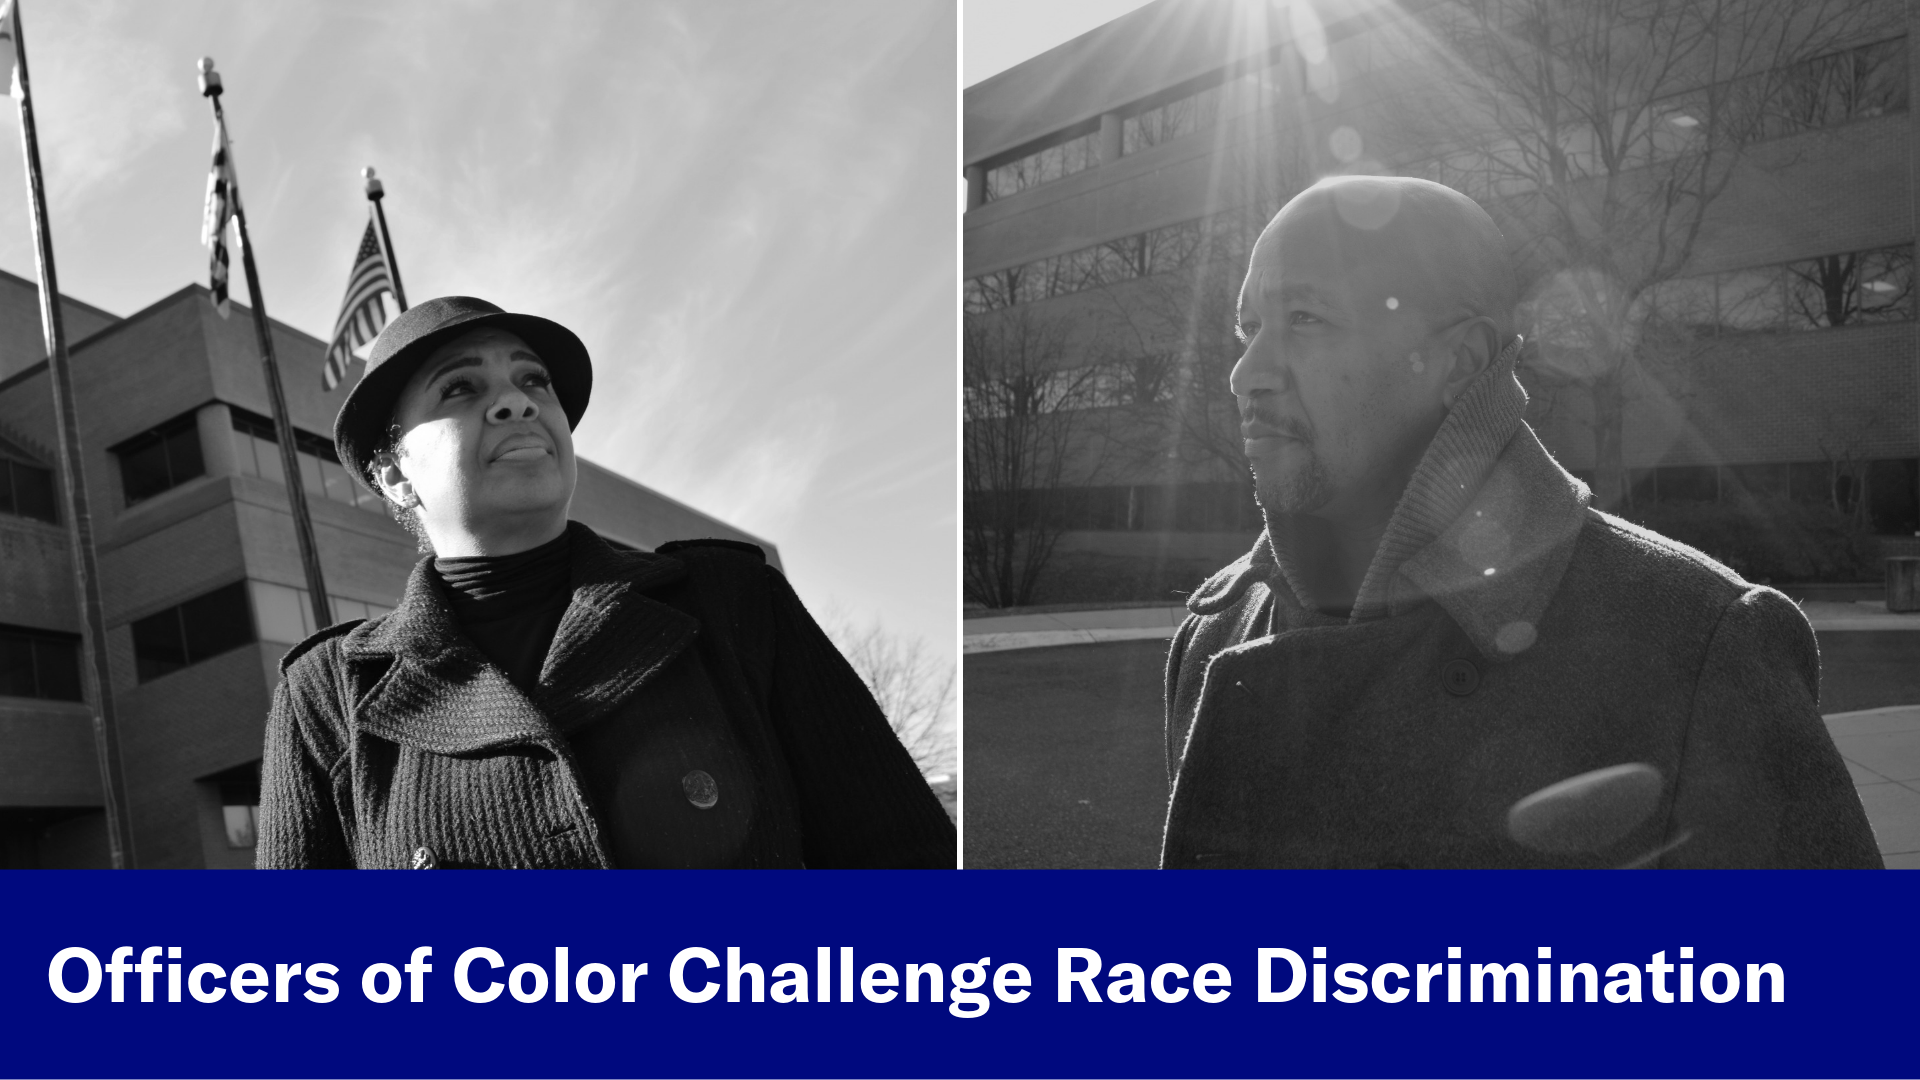 Officers of Color Challenge Race Discrimination